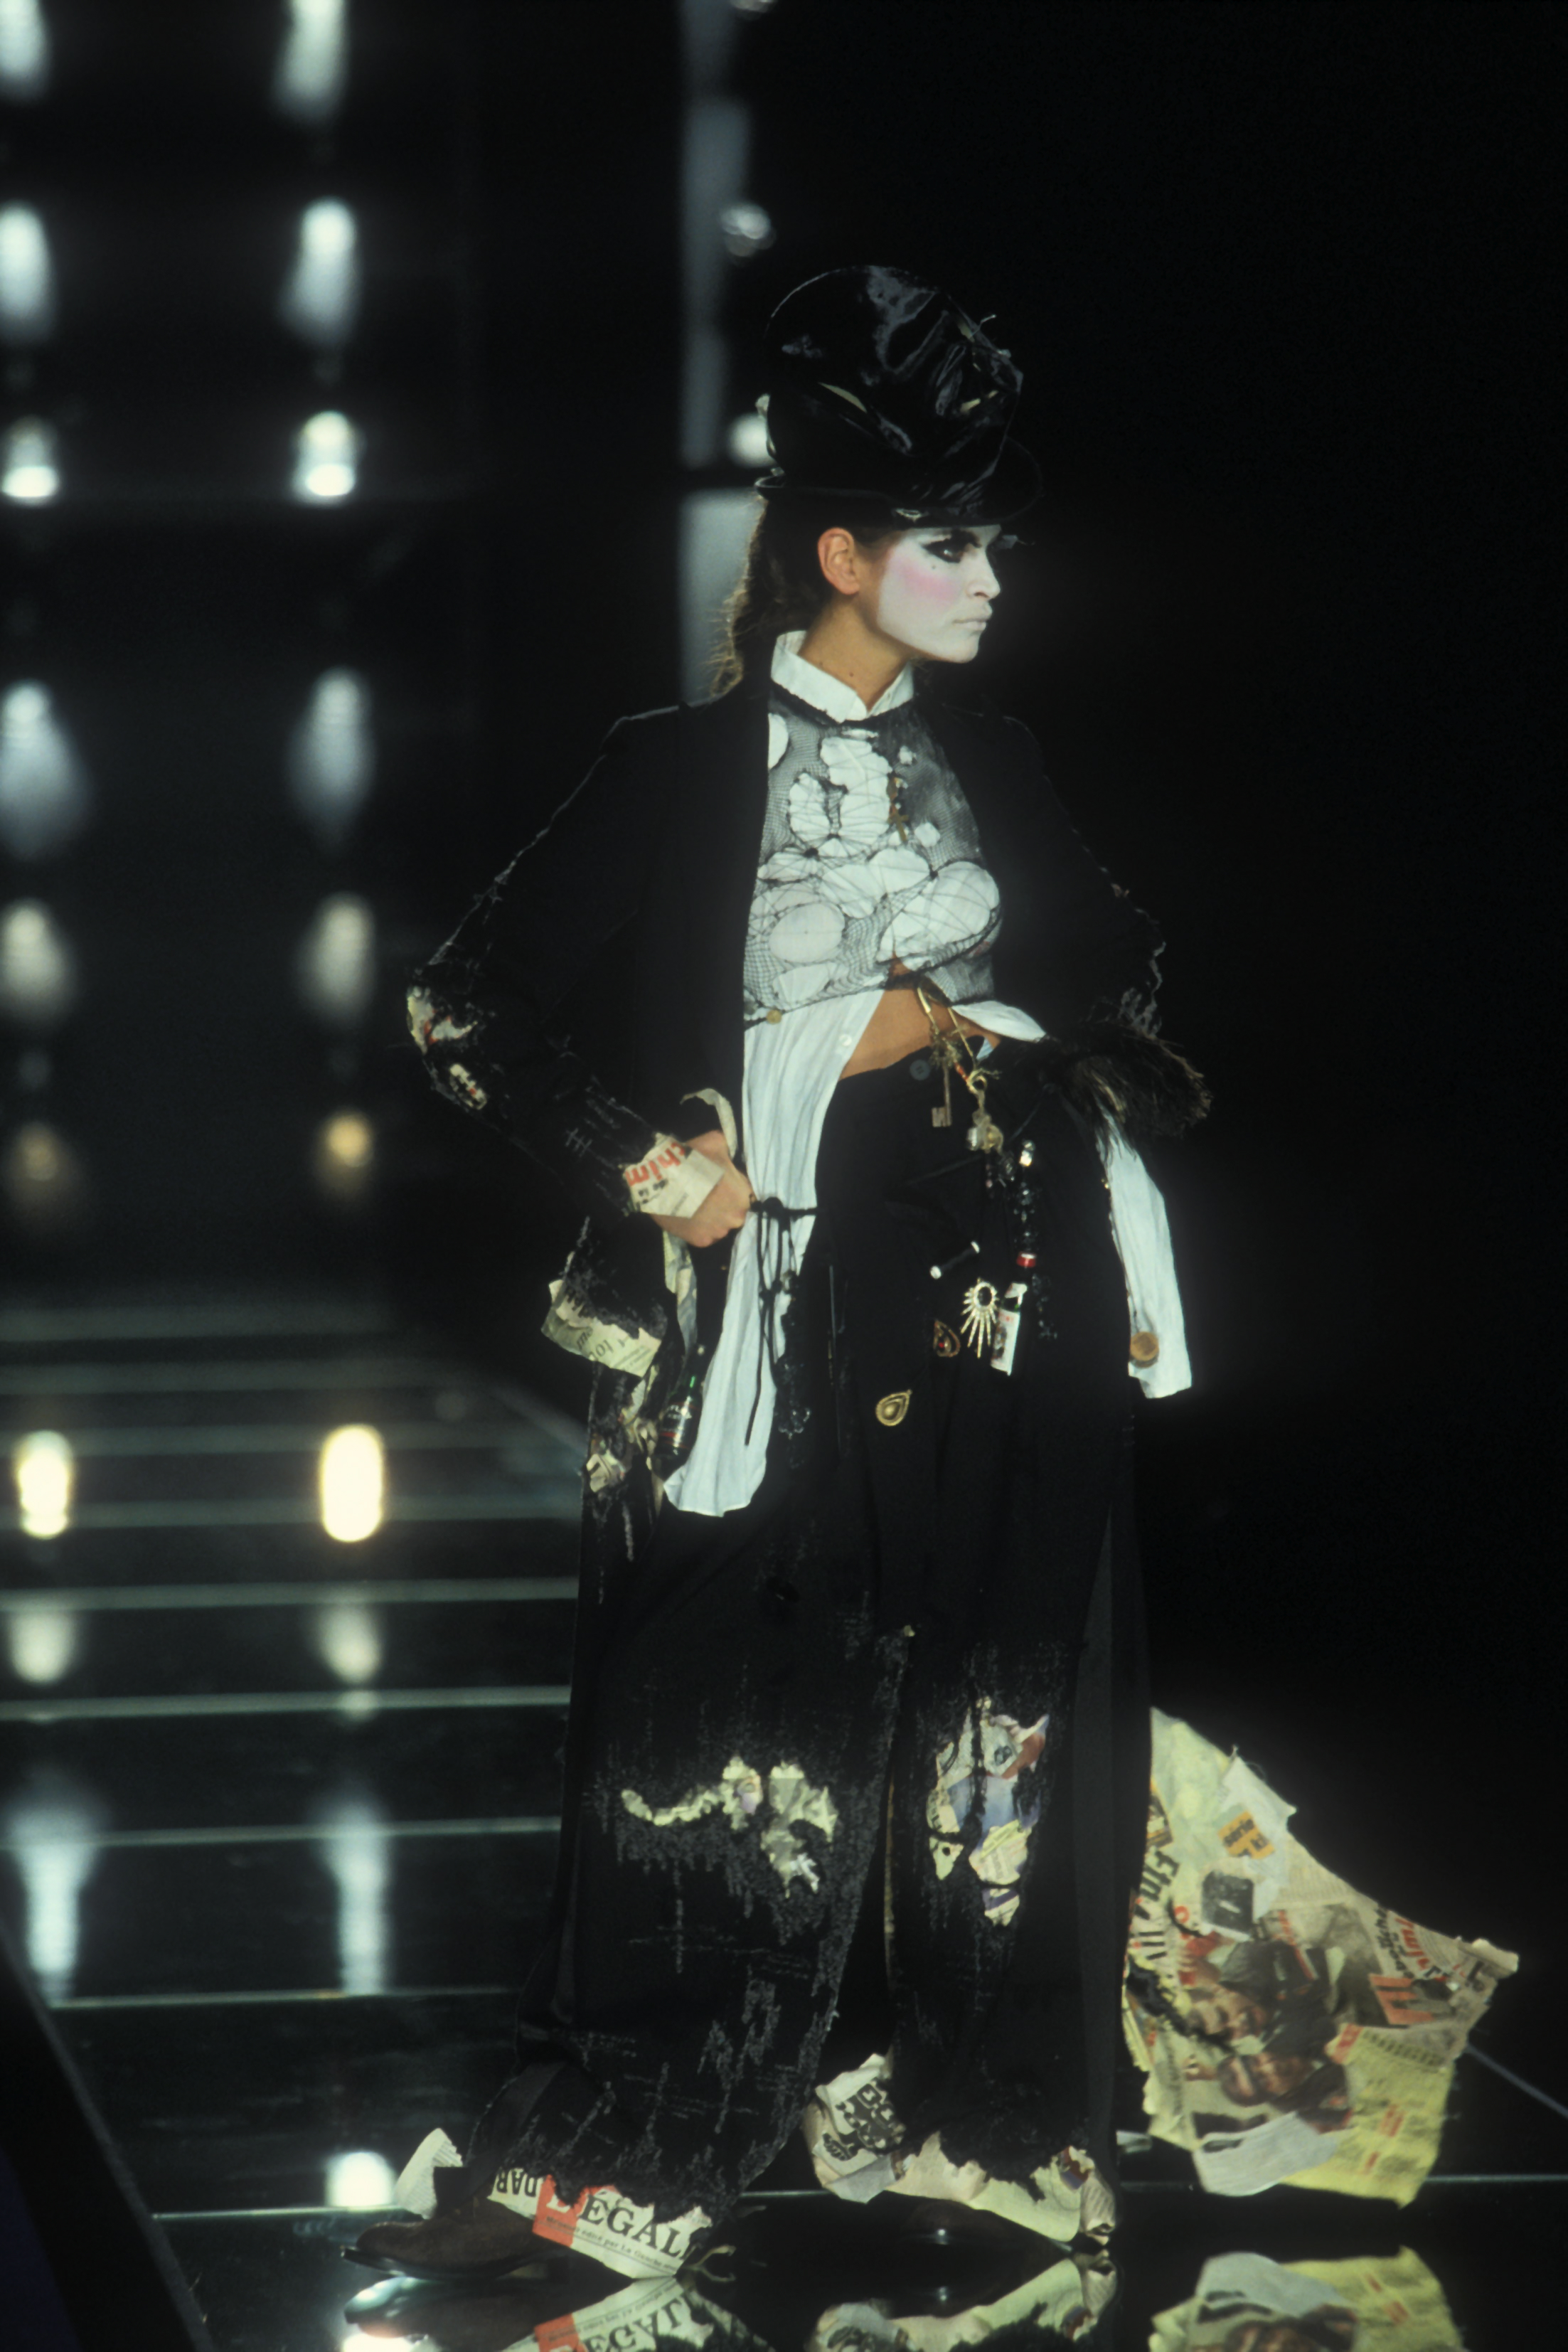 Dior haute couture spring/summer 2000, during the creative tenure of John Galliano.